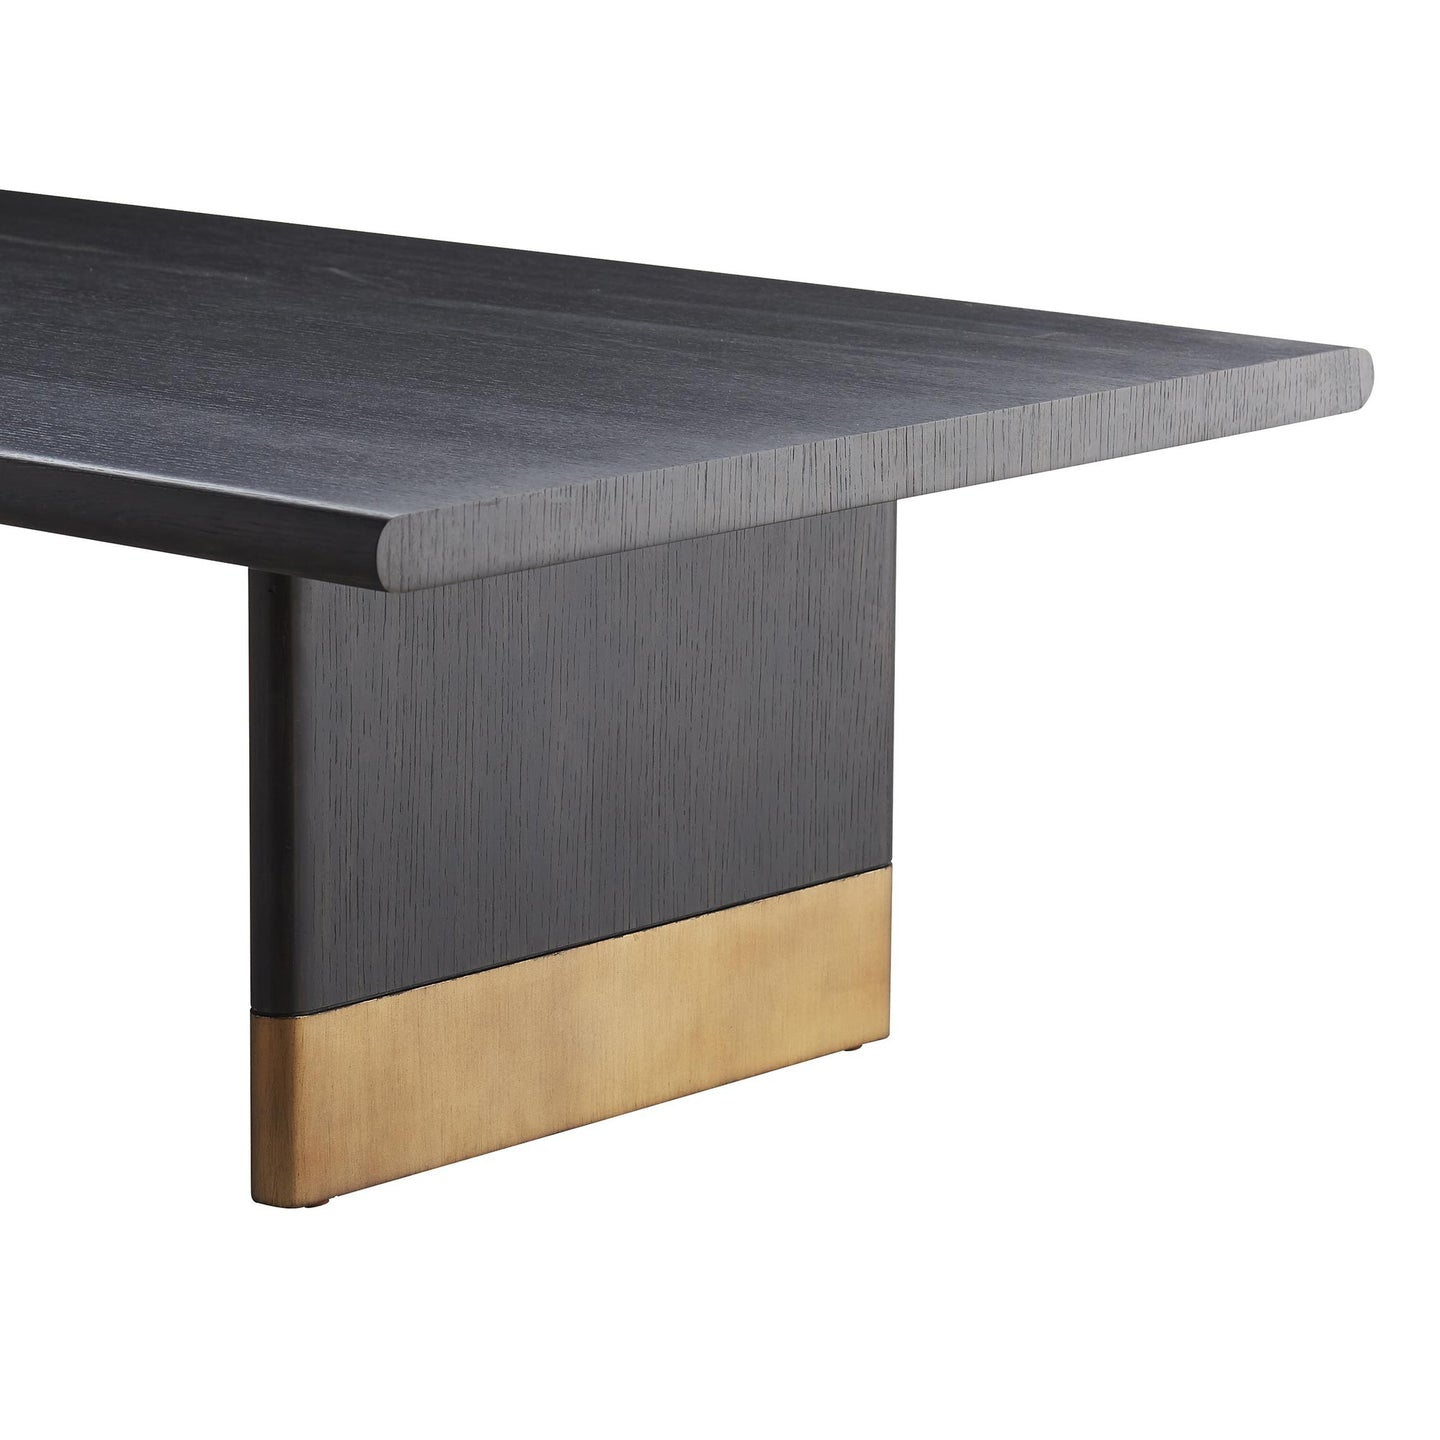 Arteriors home lawson coffee table clayton gray home arteriors home lawson coffee table ebony brass oak gold geotapseo Image collections